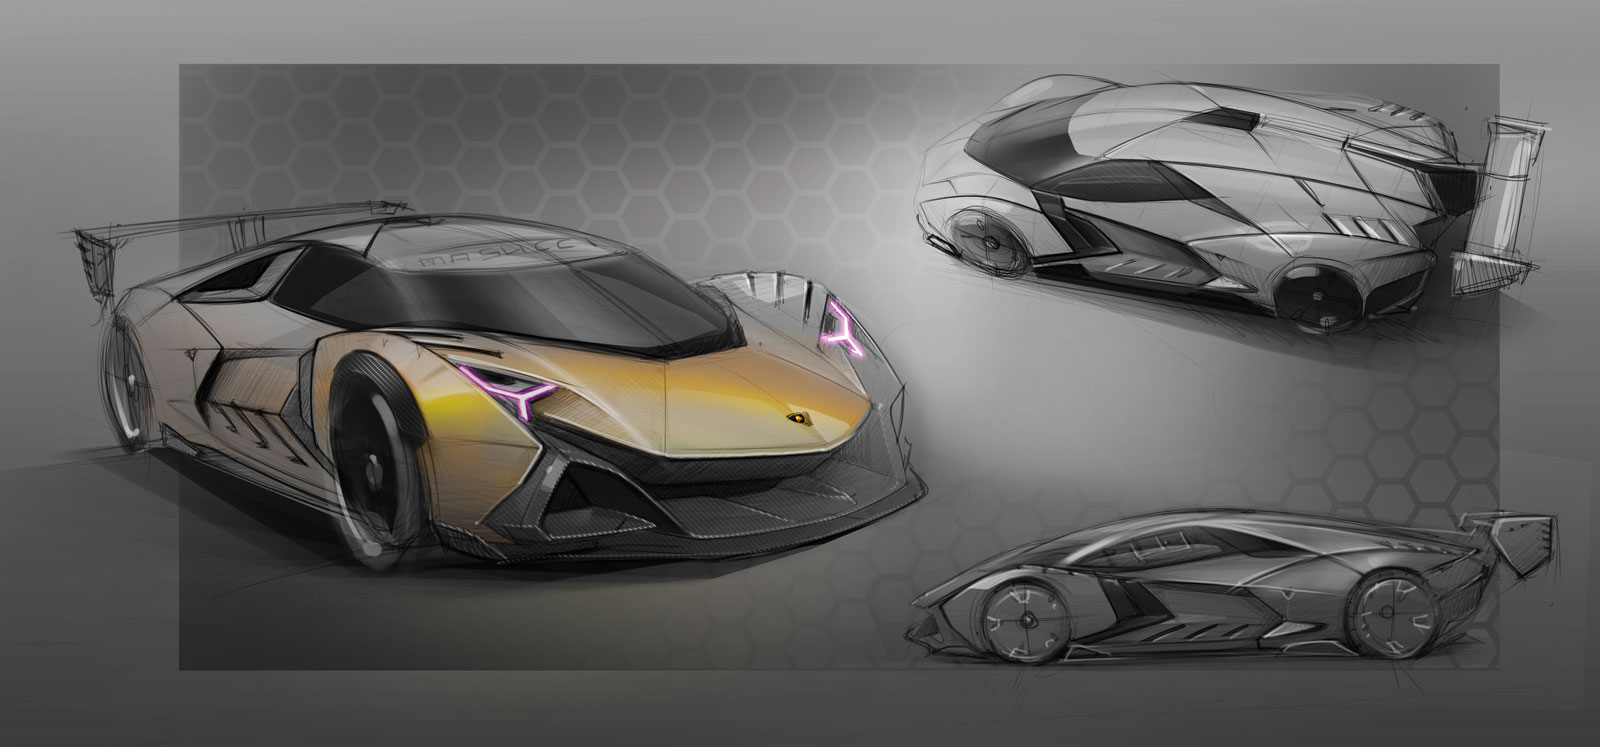 on october 2017 car body design and spd are offering two scholarships worth 25k euros you can just send your portfolio to infoscuoladesigncom or